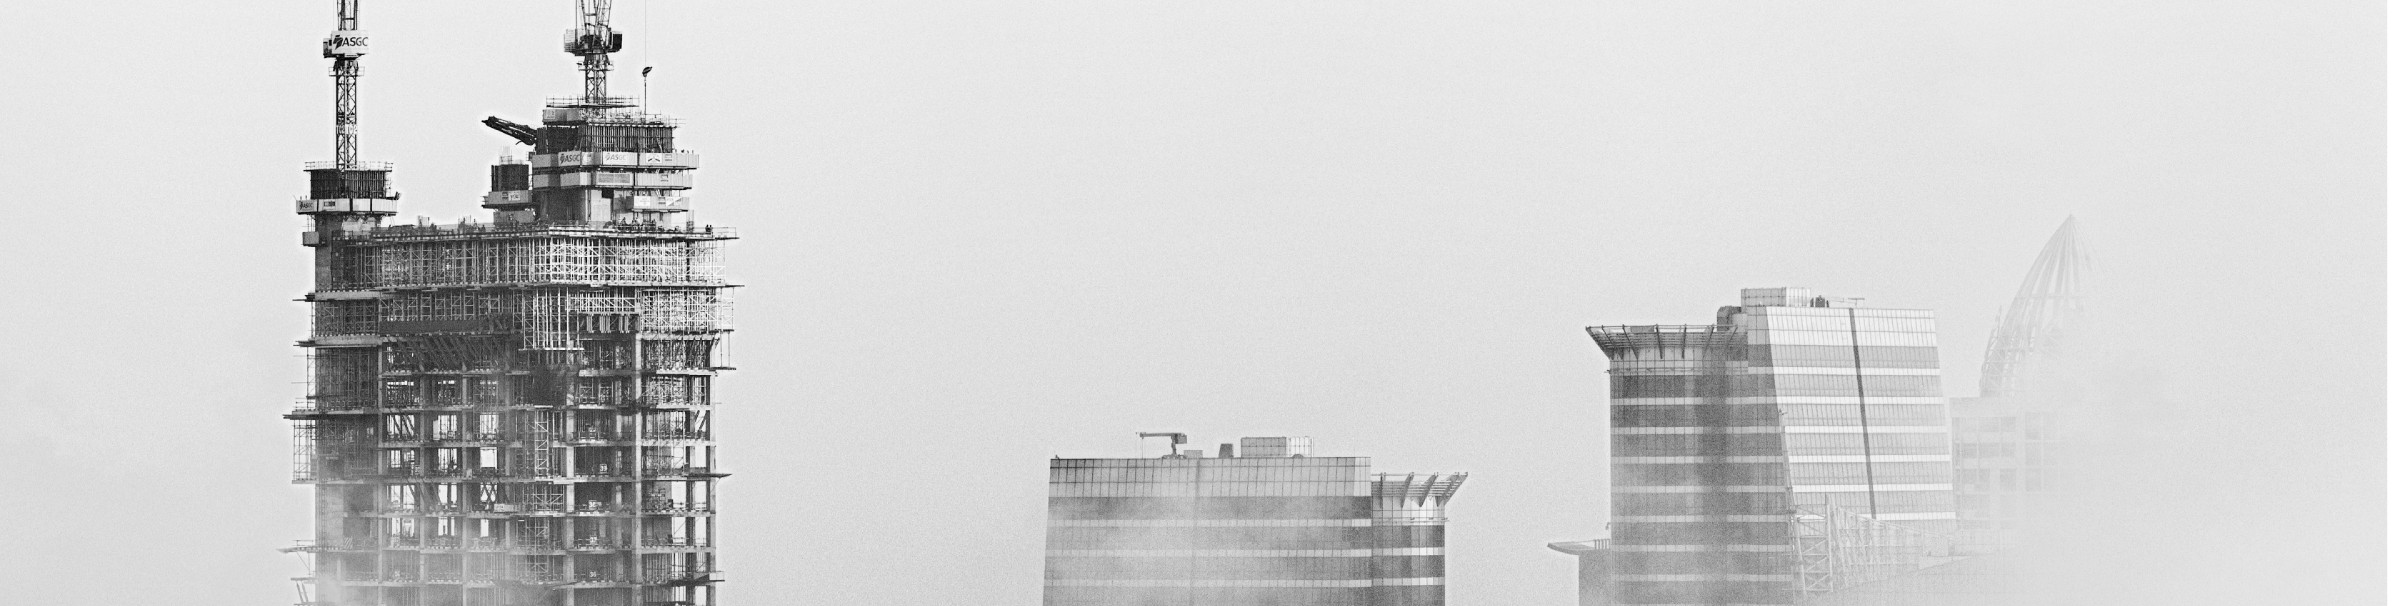 architecture-black-and-white-buildings-1437493